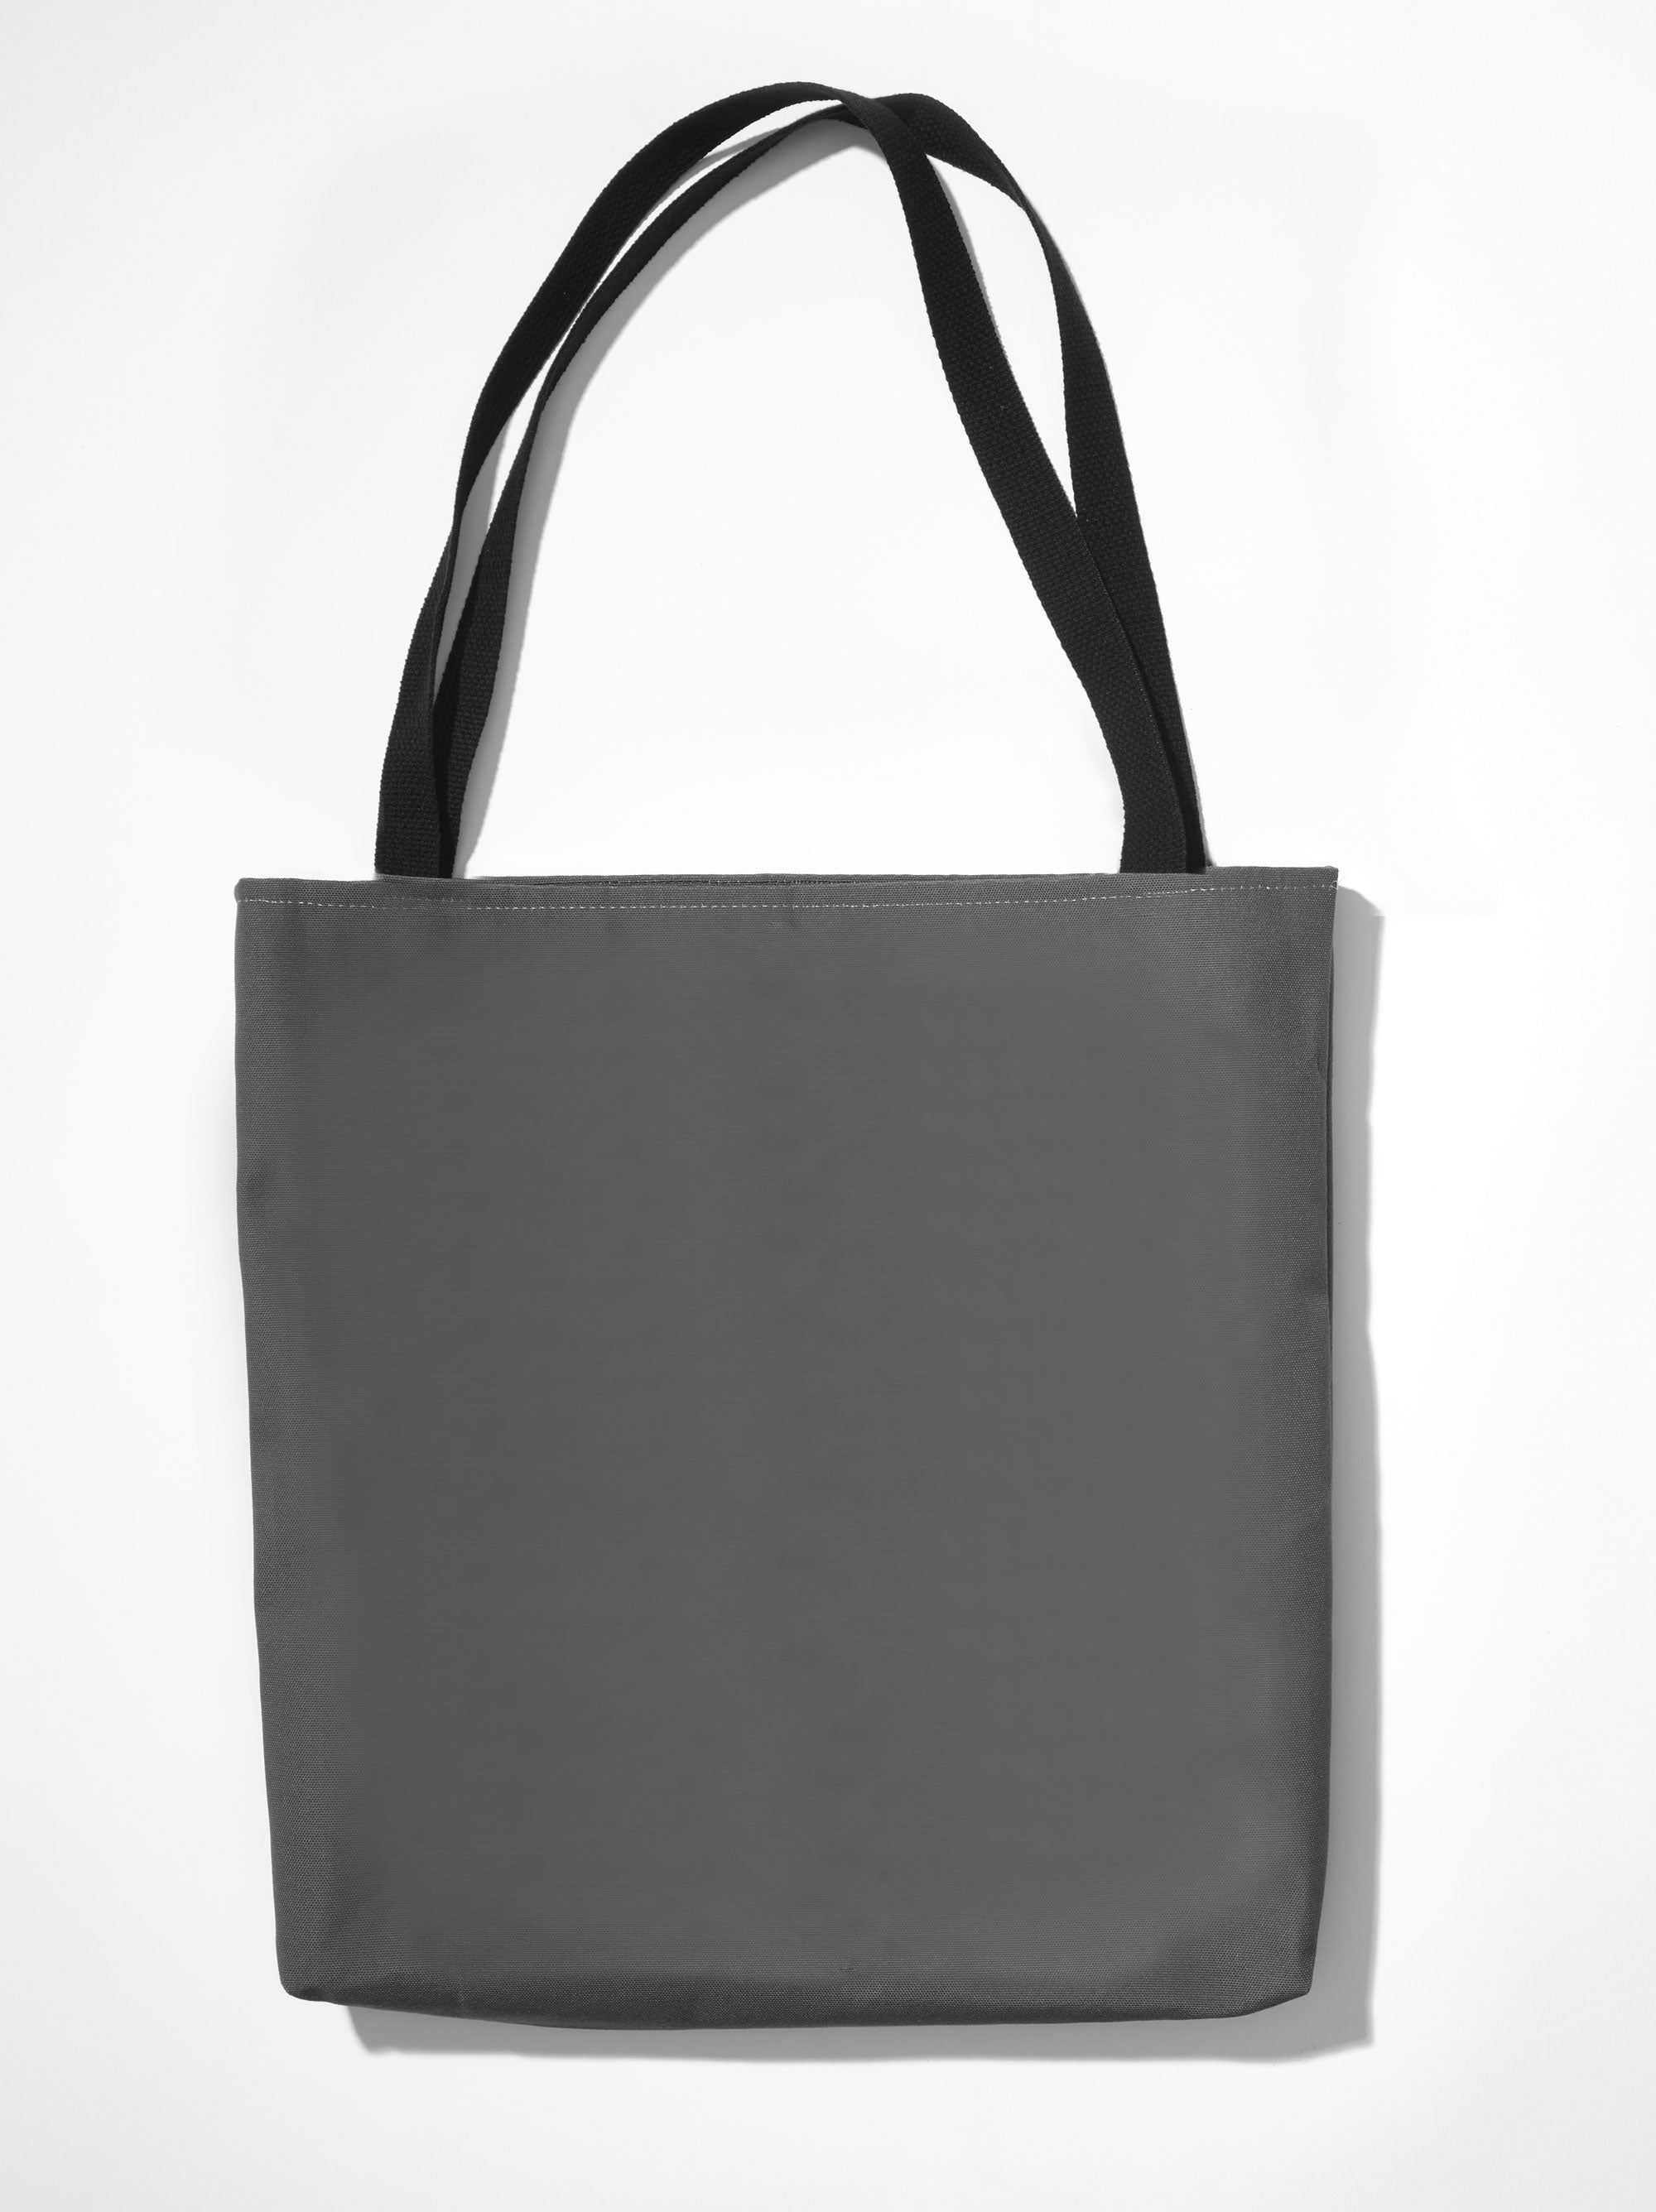 Snacks & Wine Tote Bag